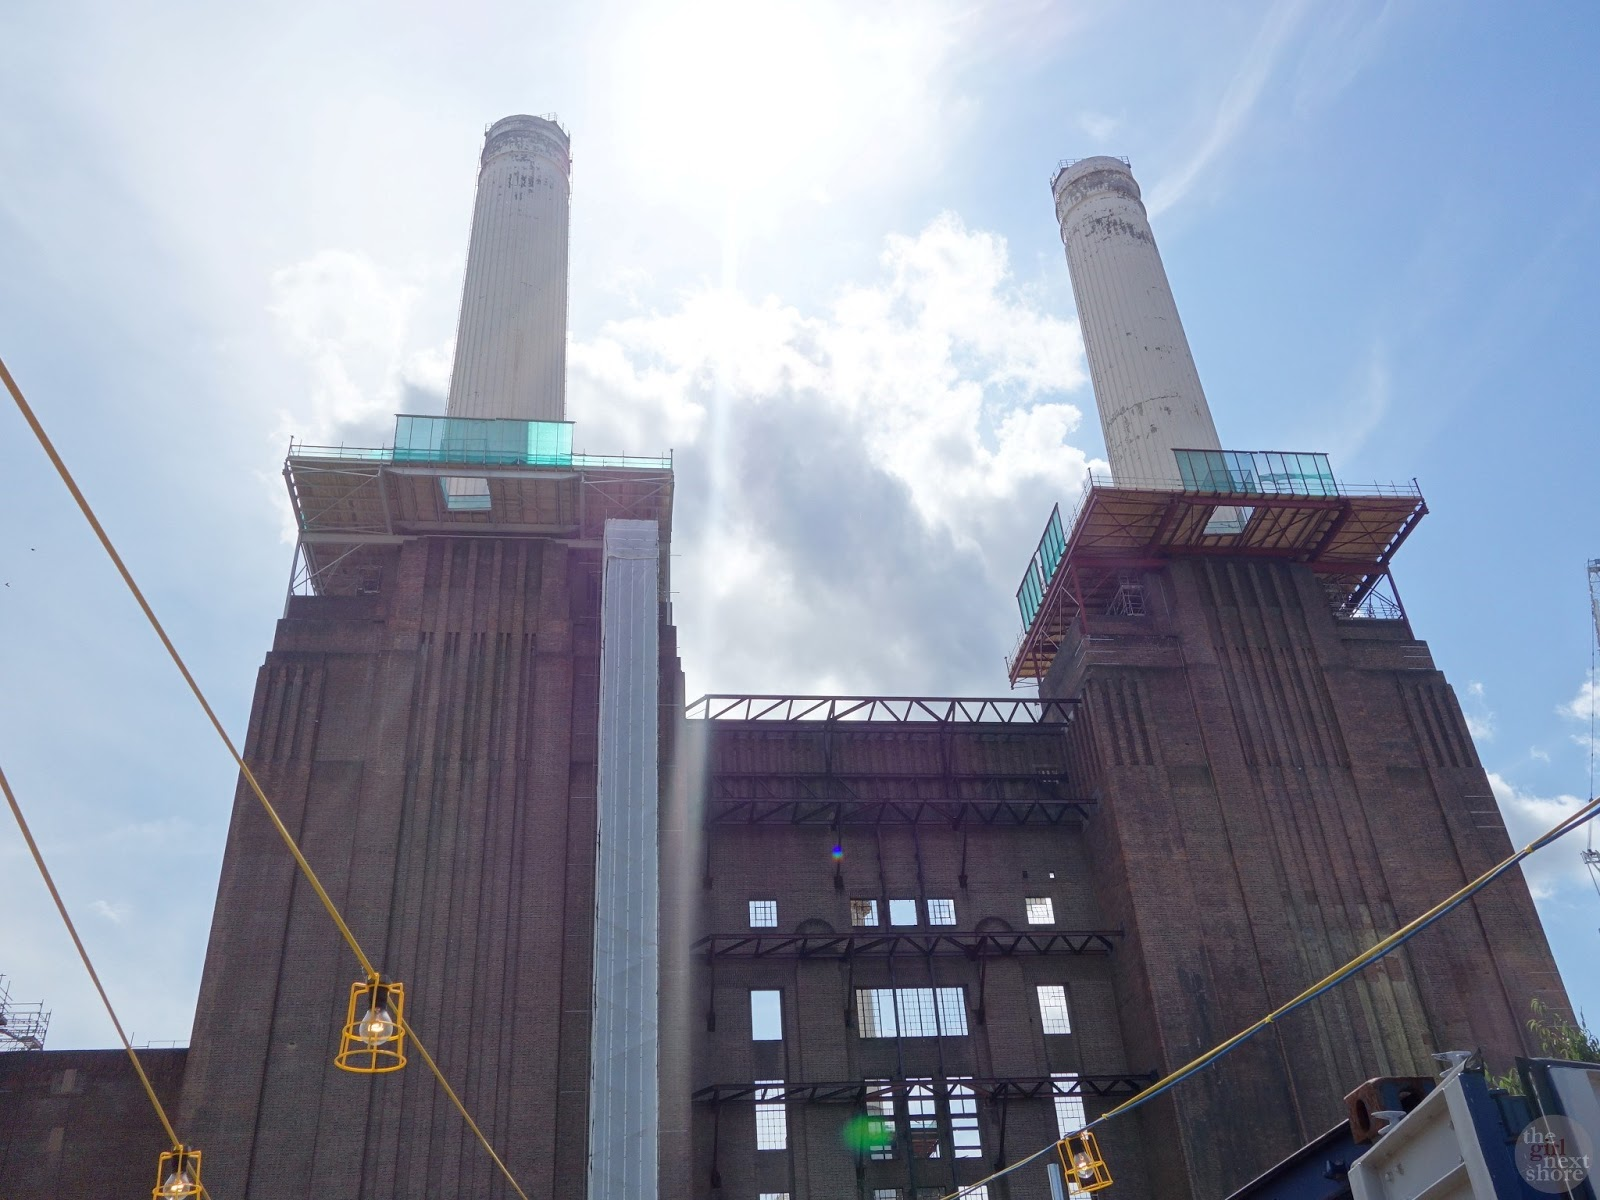 The Power of Summer at Battersea Power Station